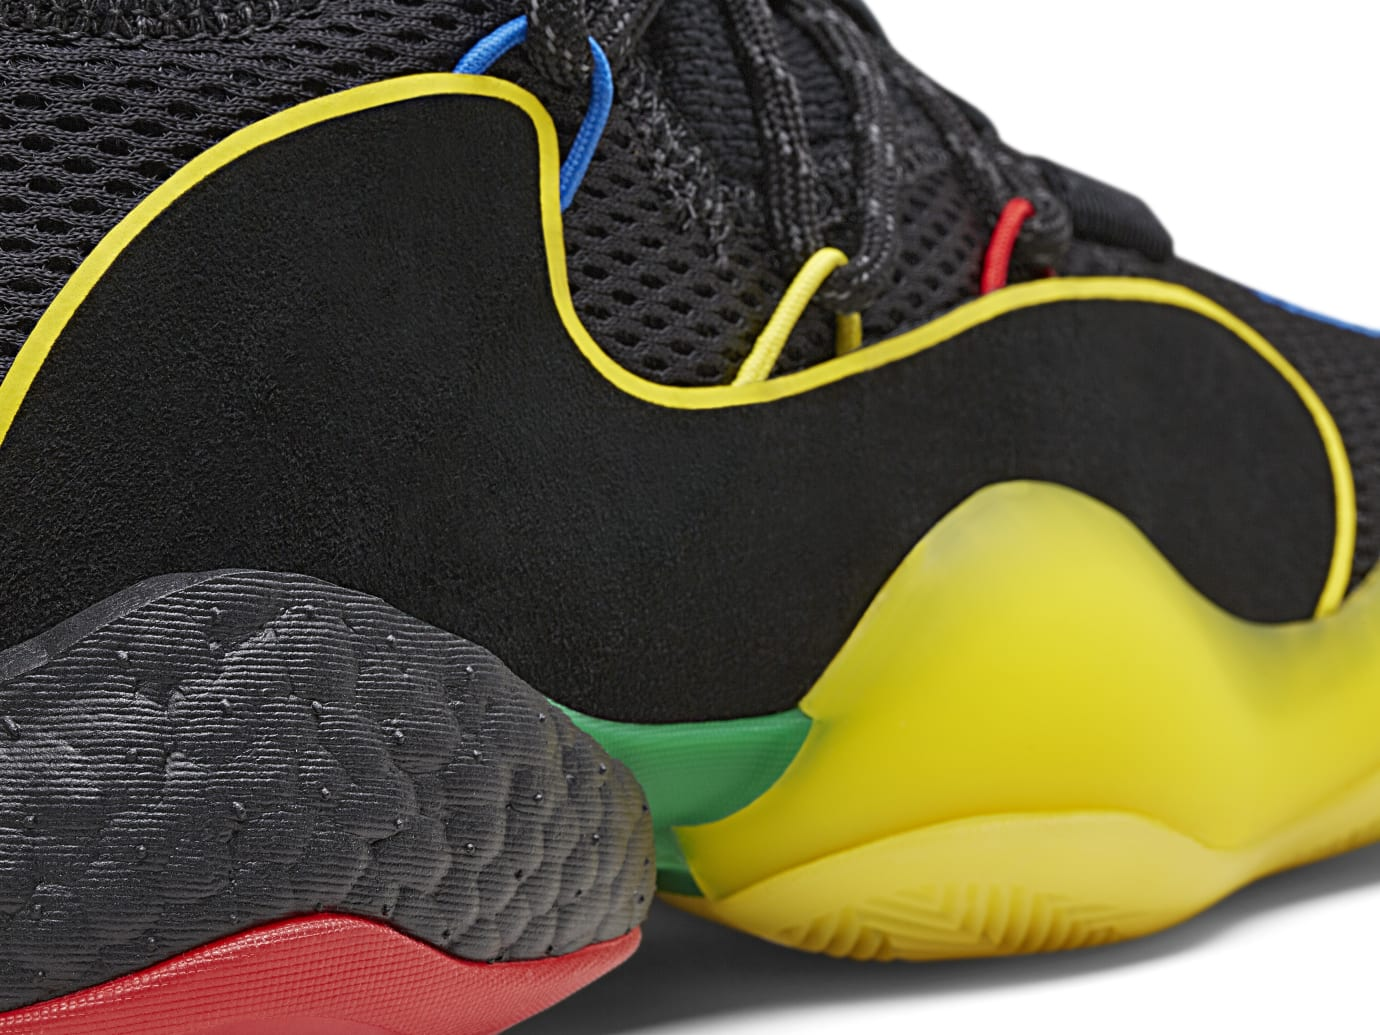 00a80f038 Pharrell x Adidas Crazy BYW X  Core Black Green Supplier Color ...